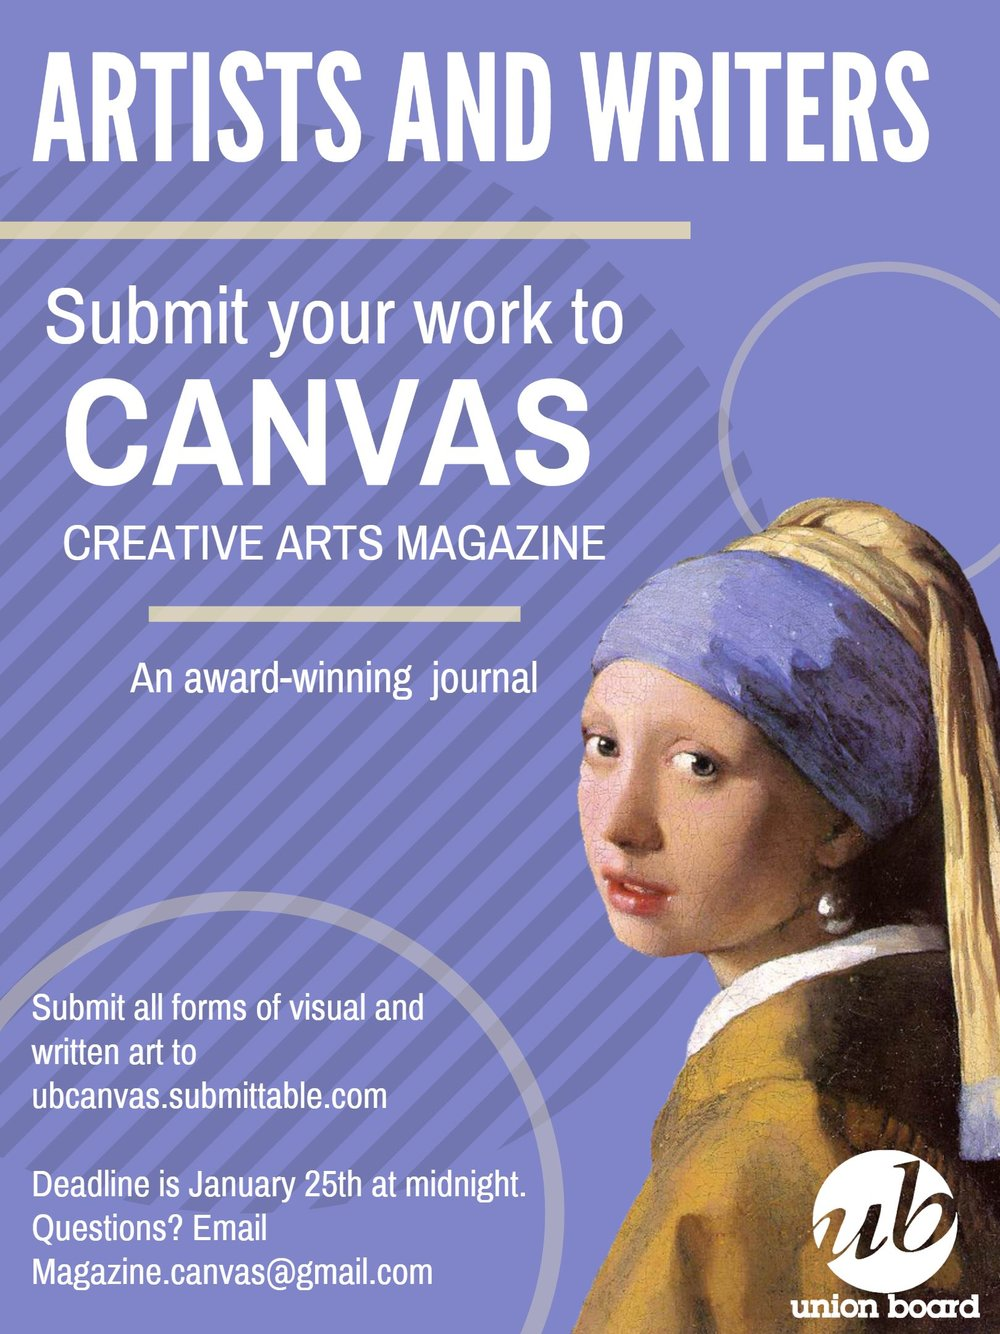 CANVAS magazine Flier.jpeg